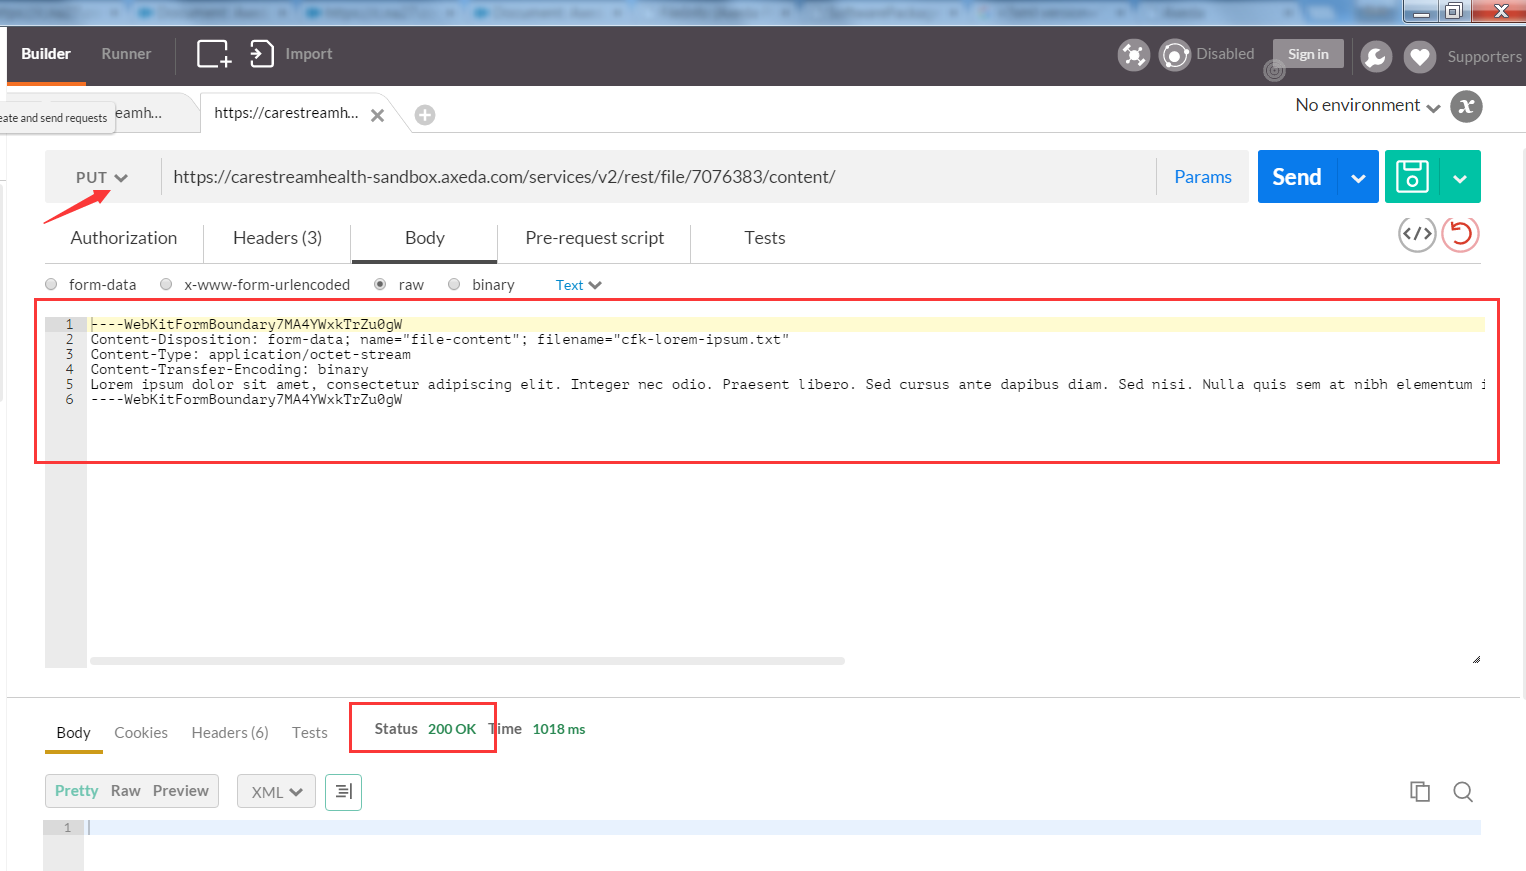 REST API Example - Creating a Software Package wit    - PTC Community